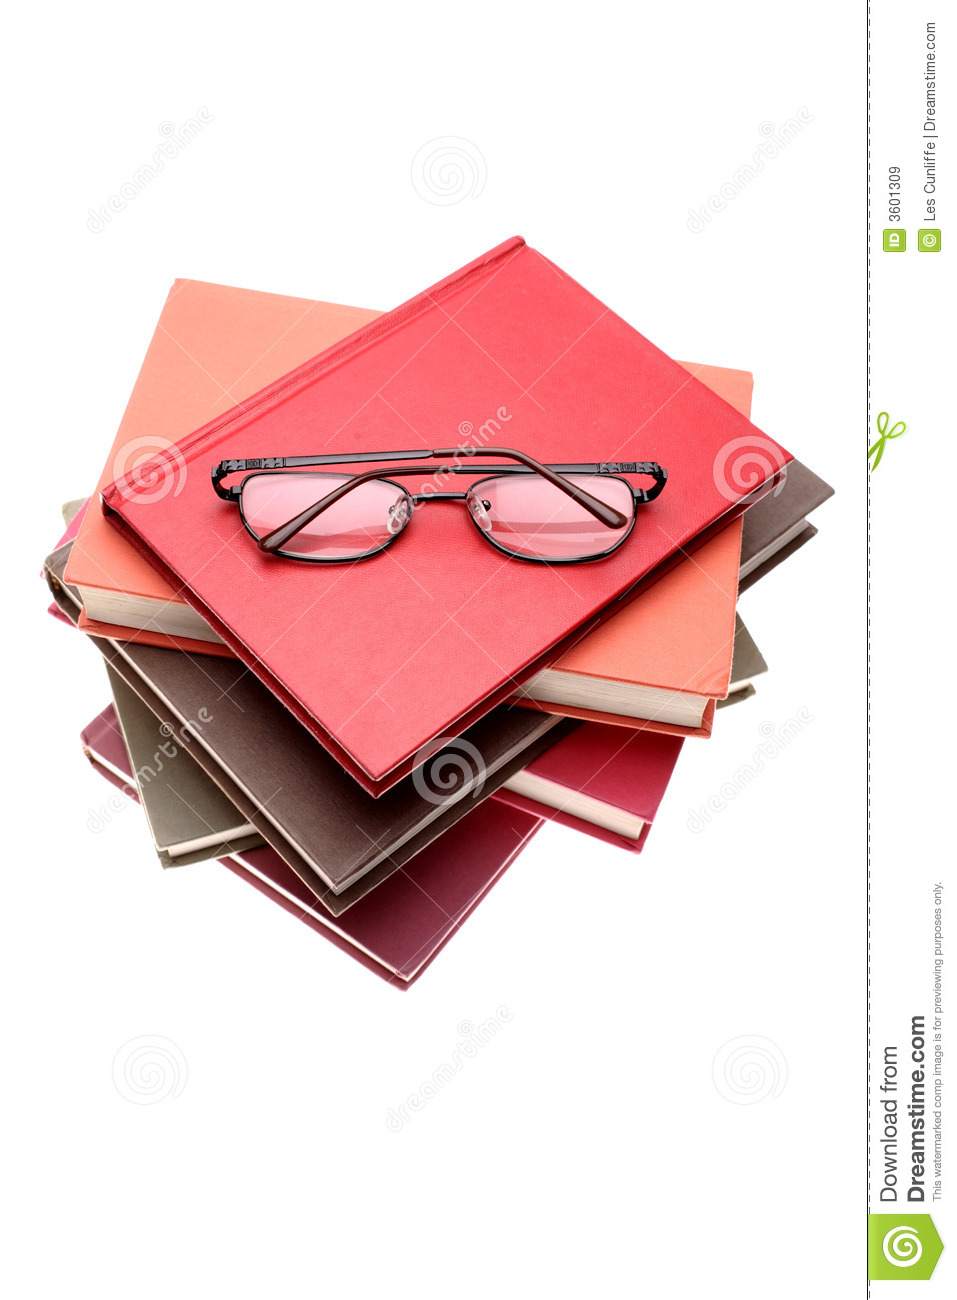 glasses on book - photo #40